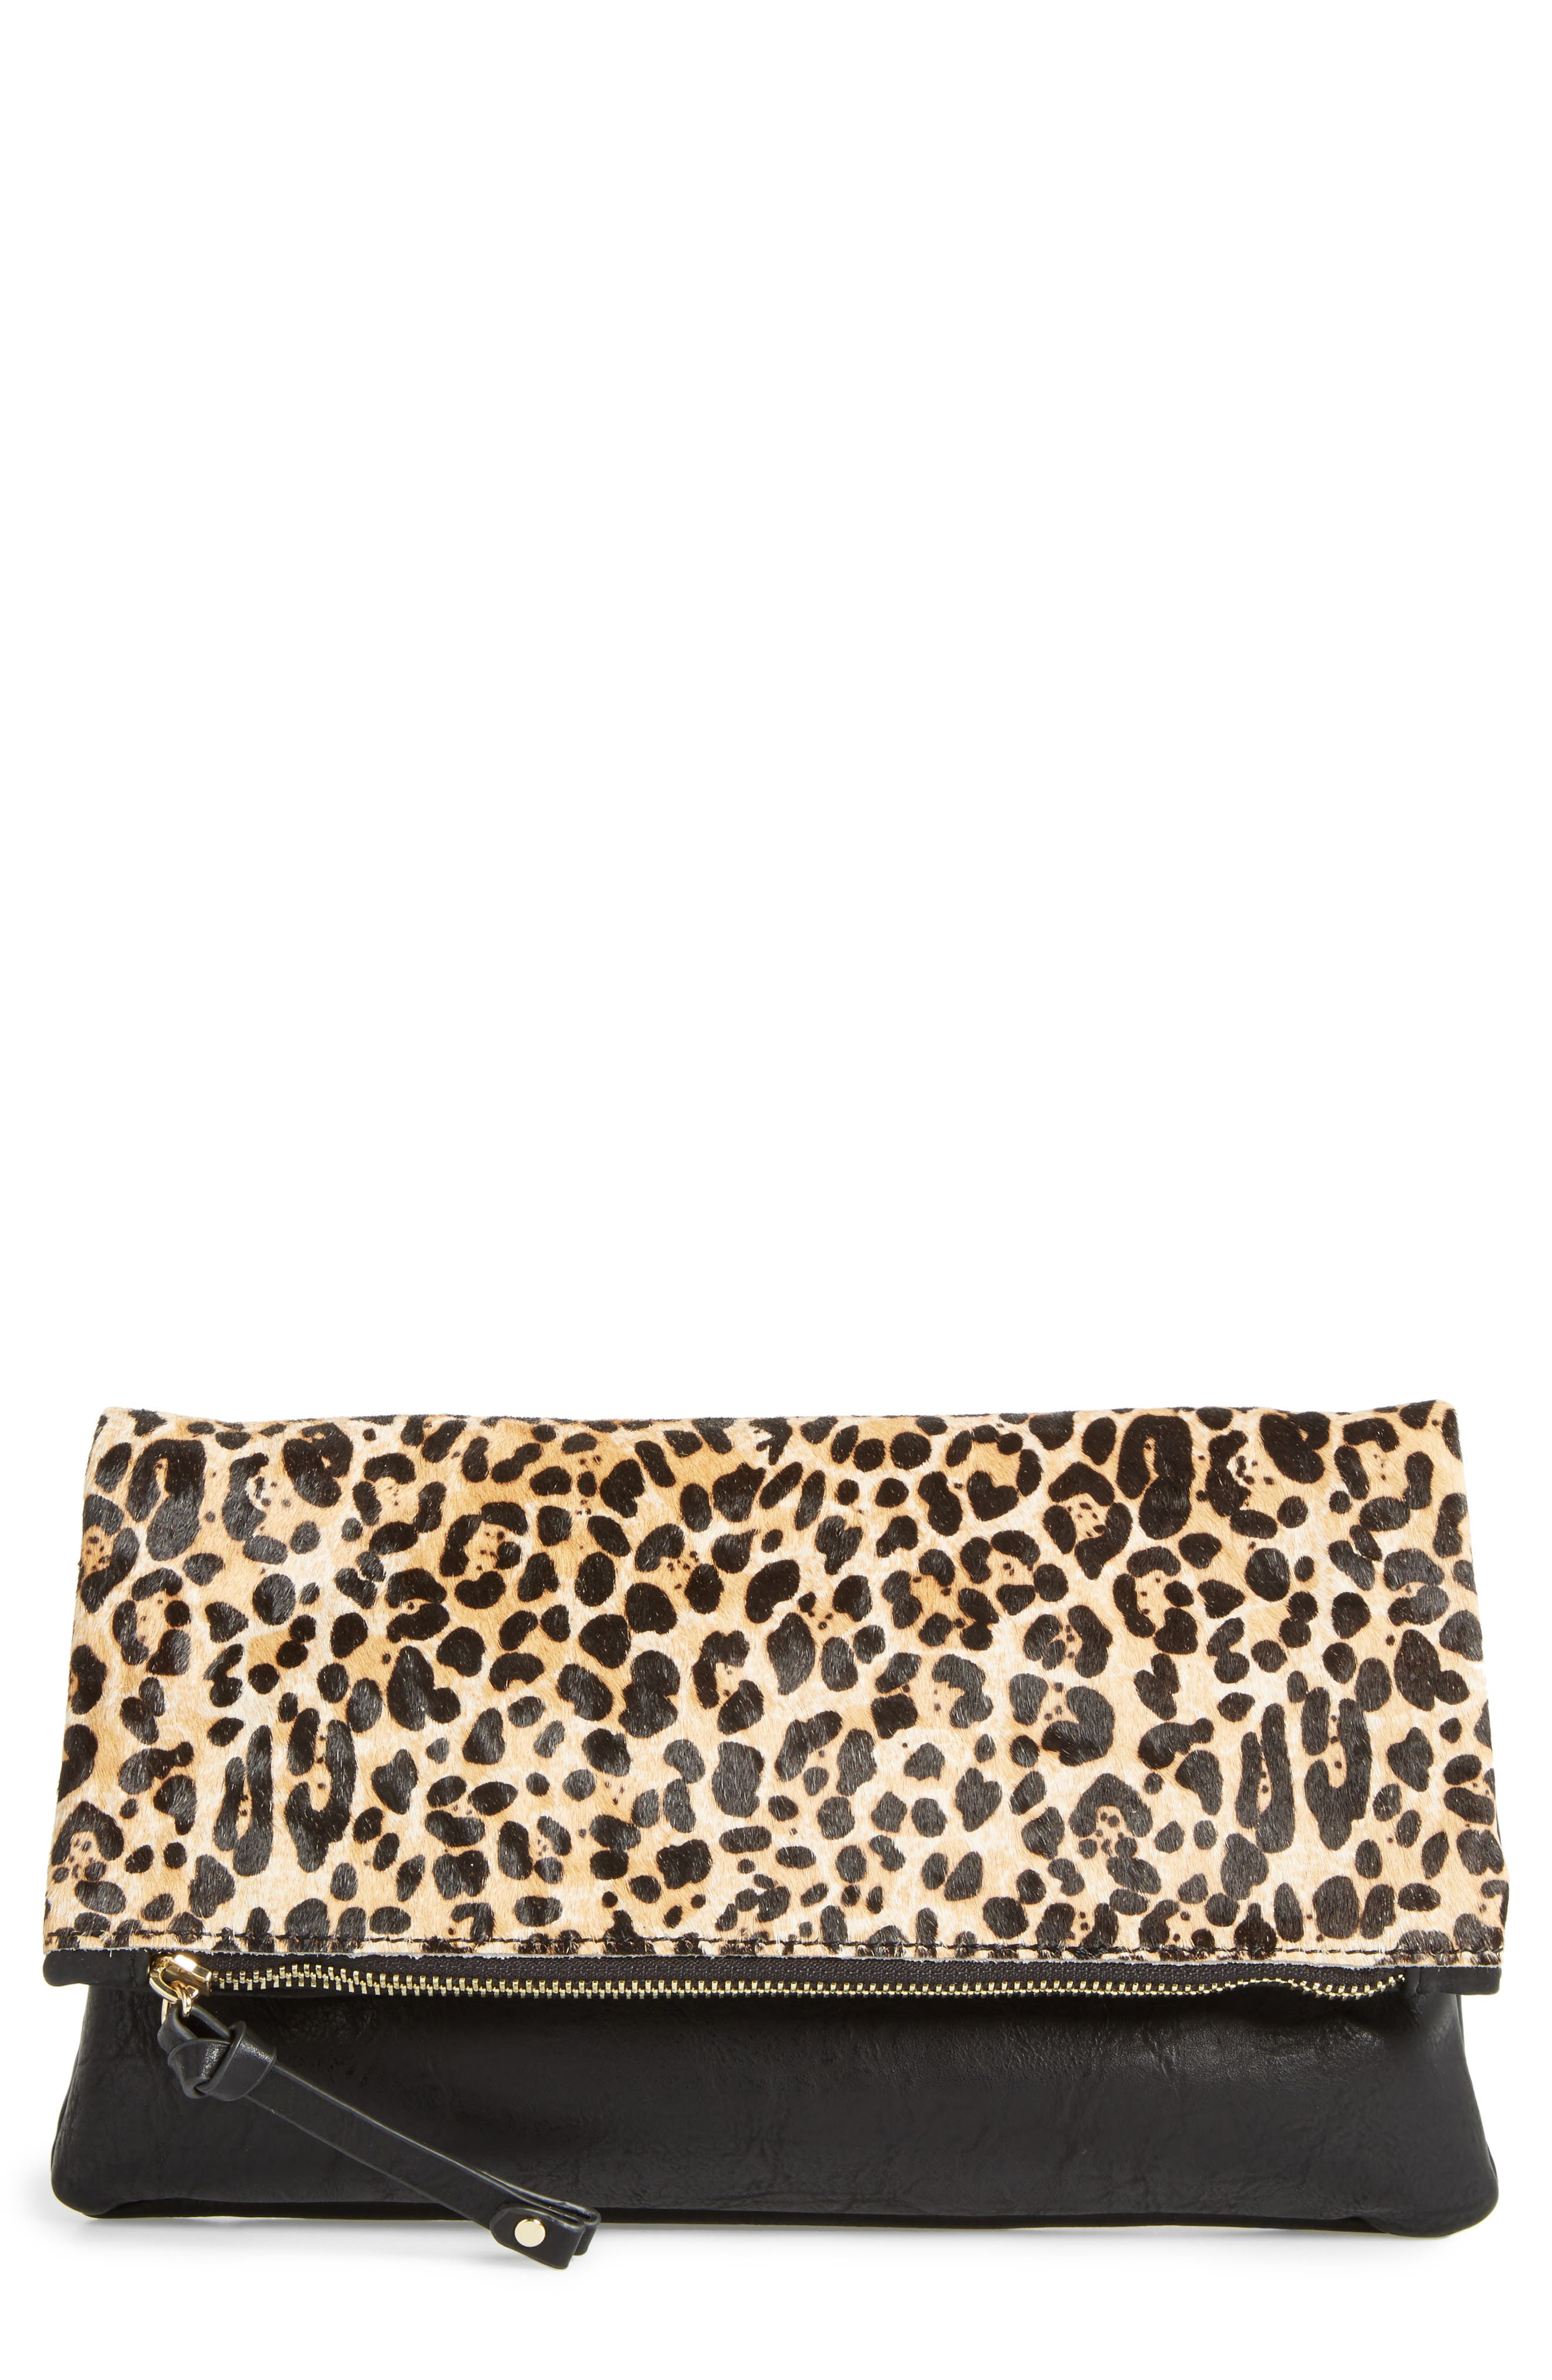 SOLE SOCIETY Marlena Faux Leather Foldover Clutch